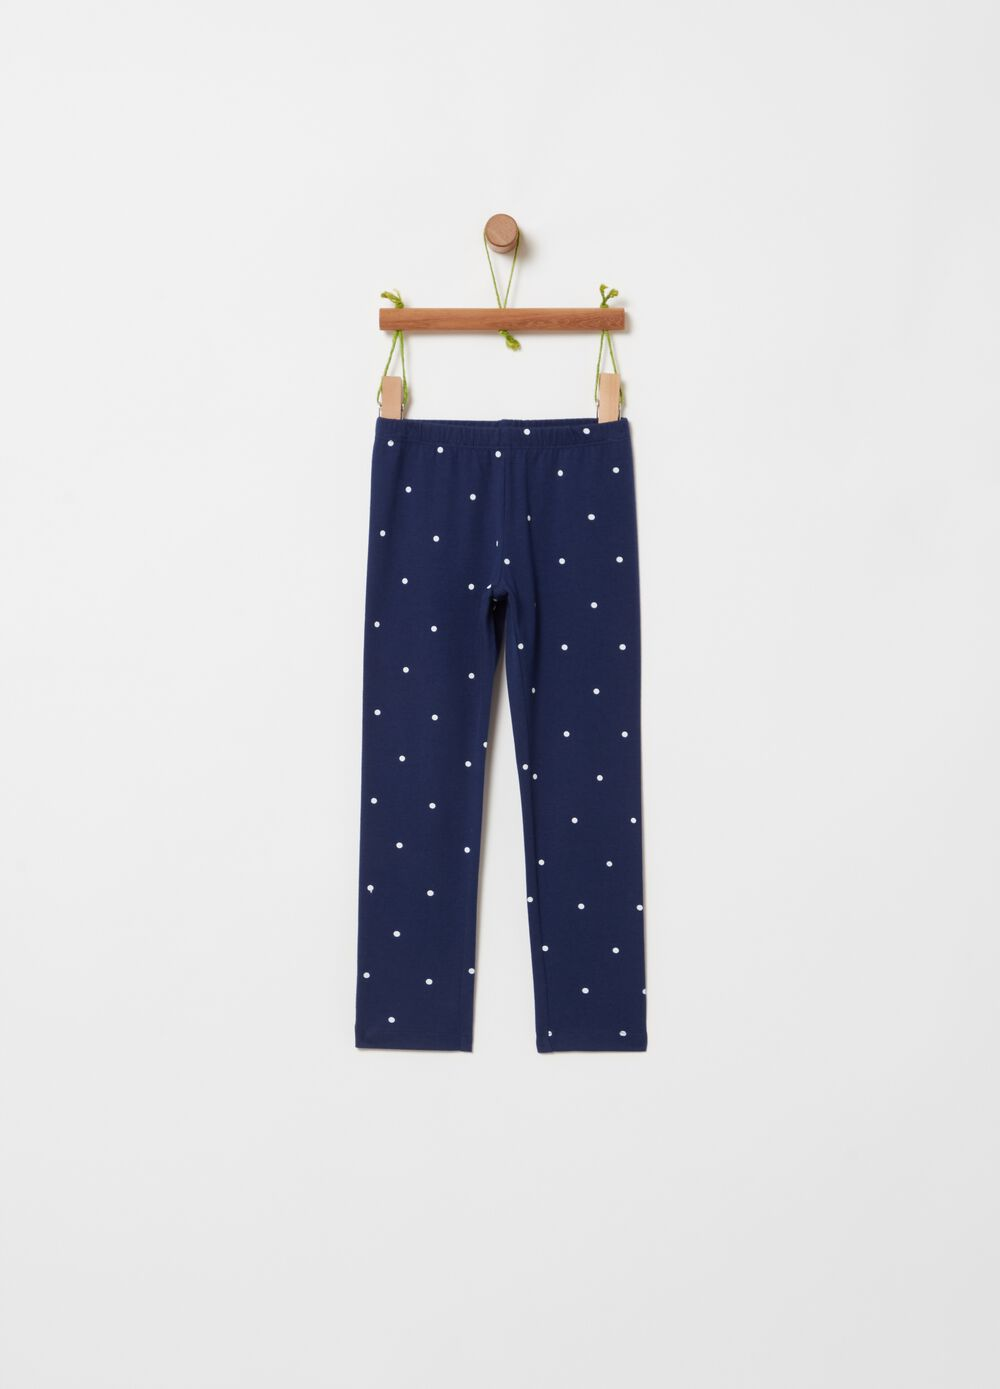 Stretch leggings with polka dot print